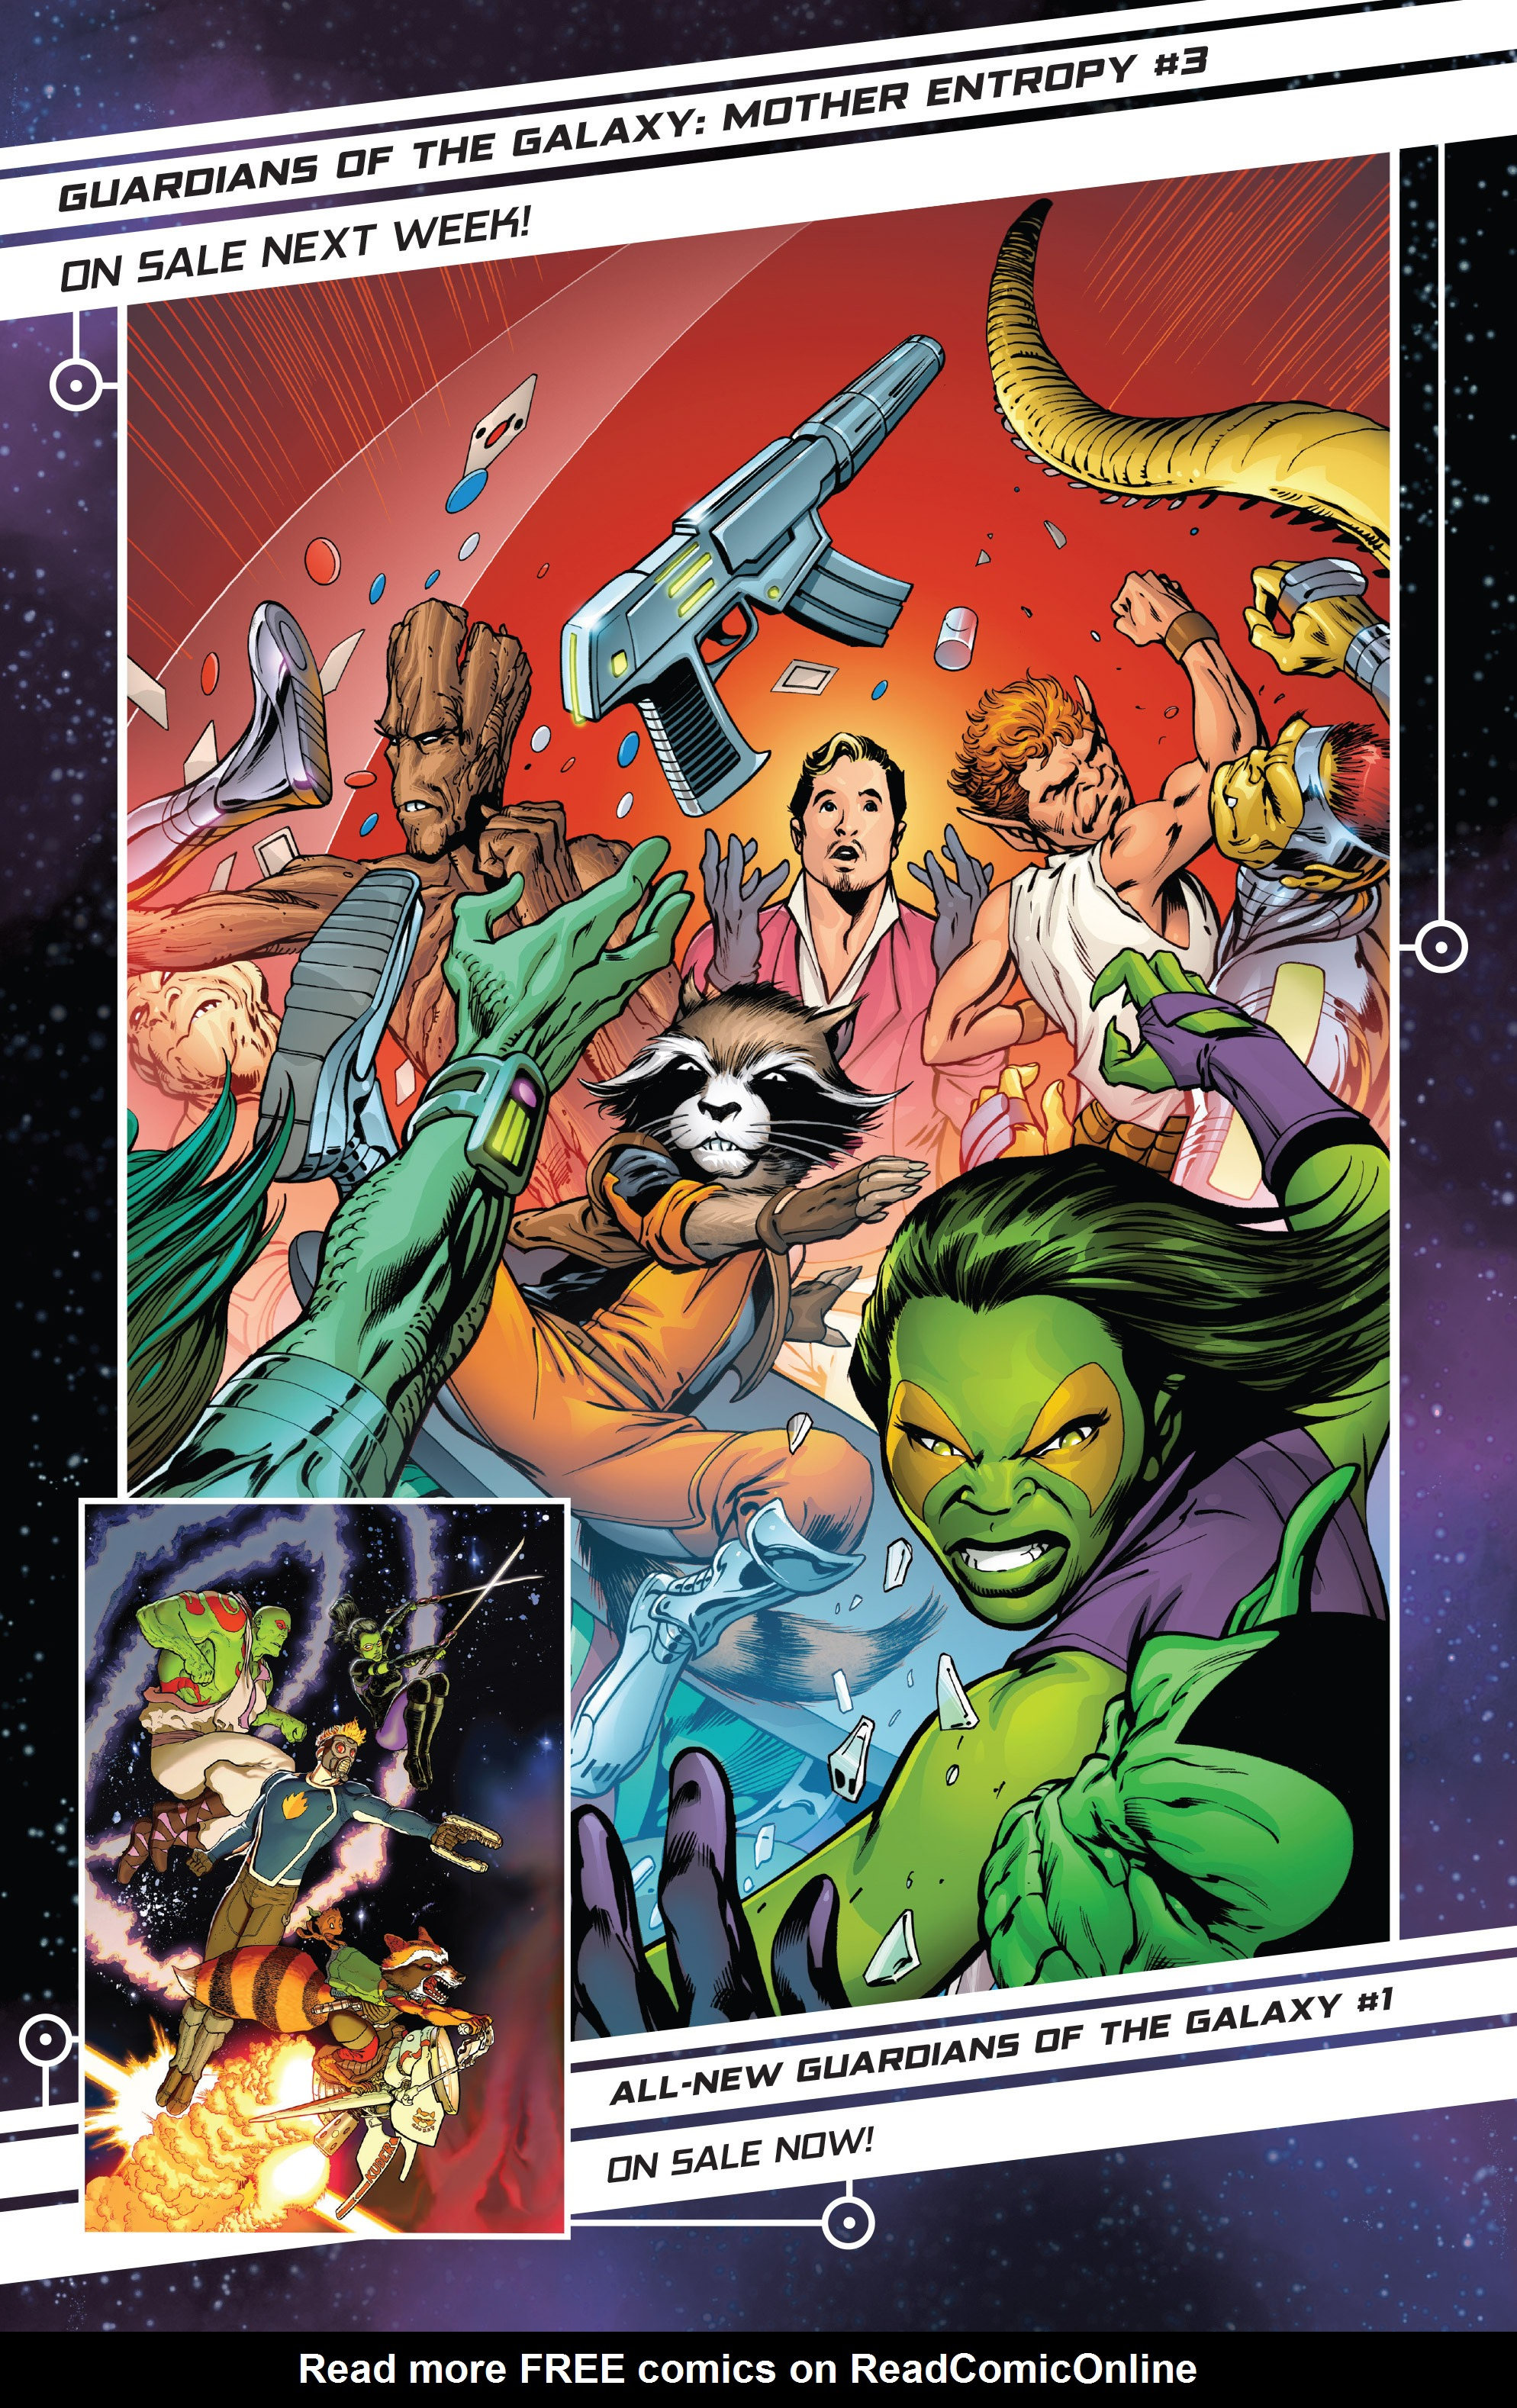 Read online Guardians of the Galaxy: Mother Entropy comic -  Issue #2 - 22